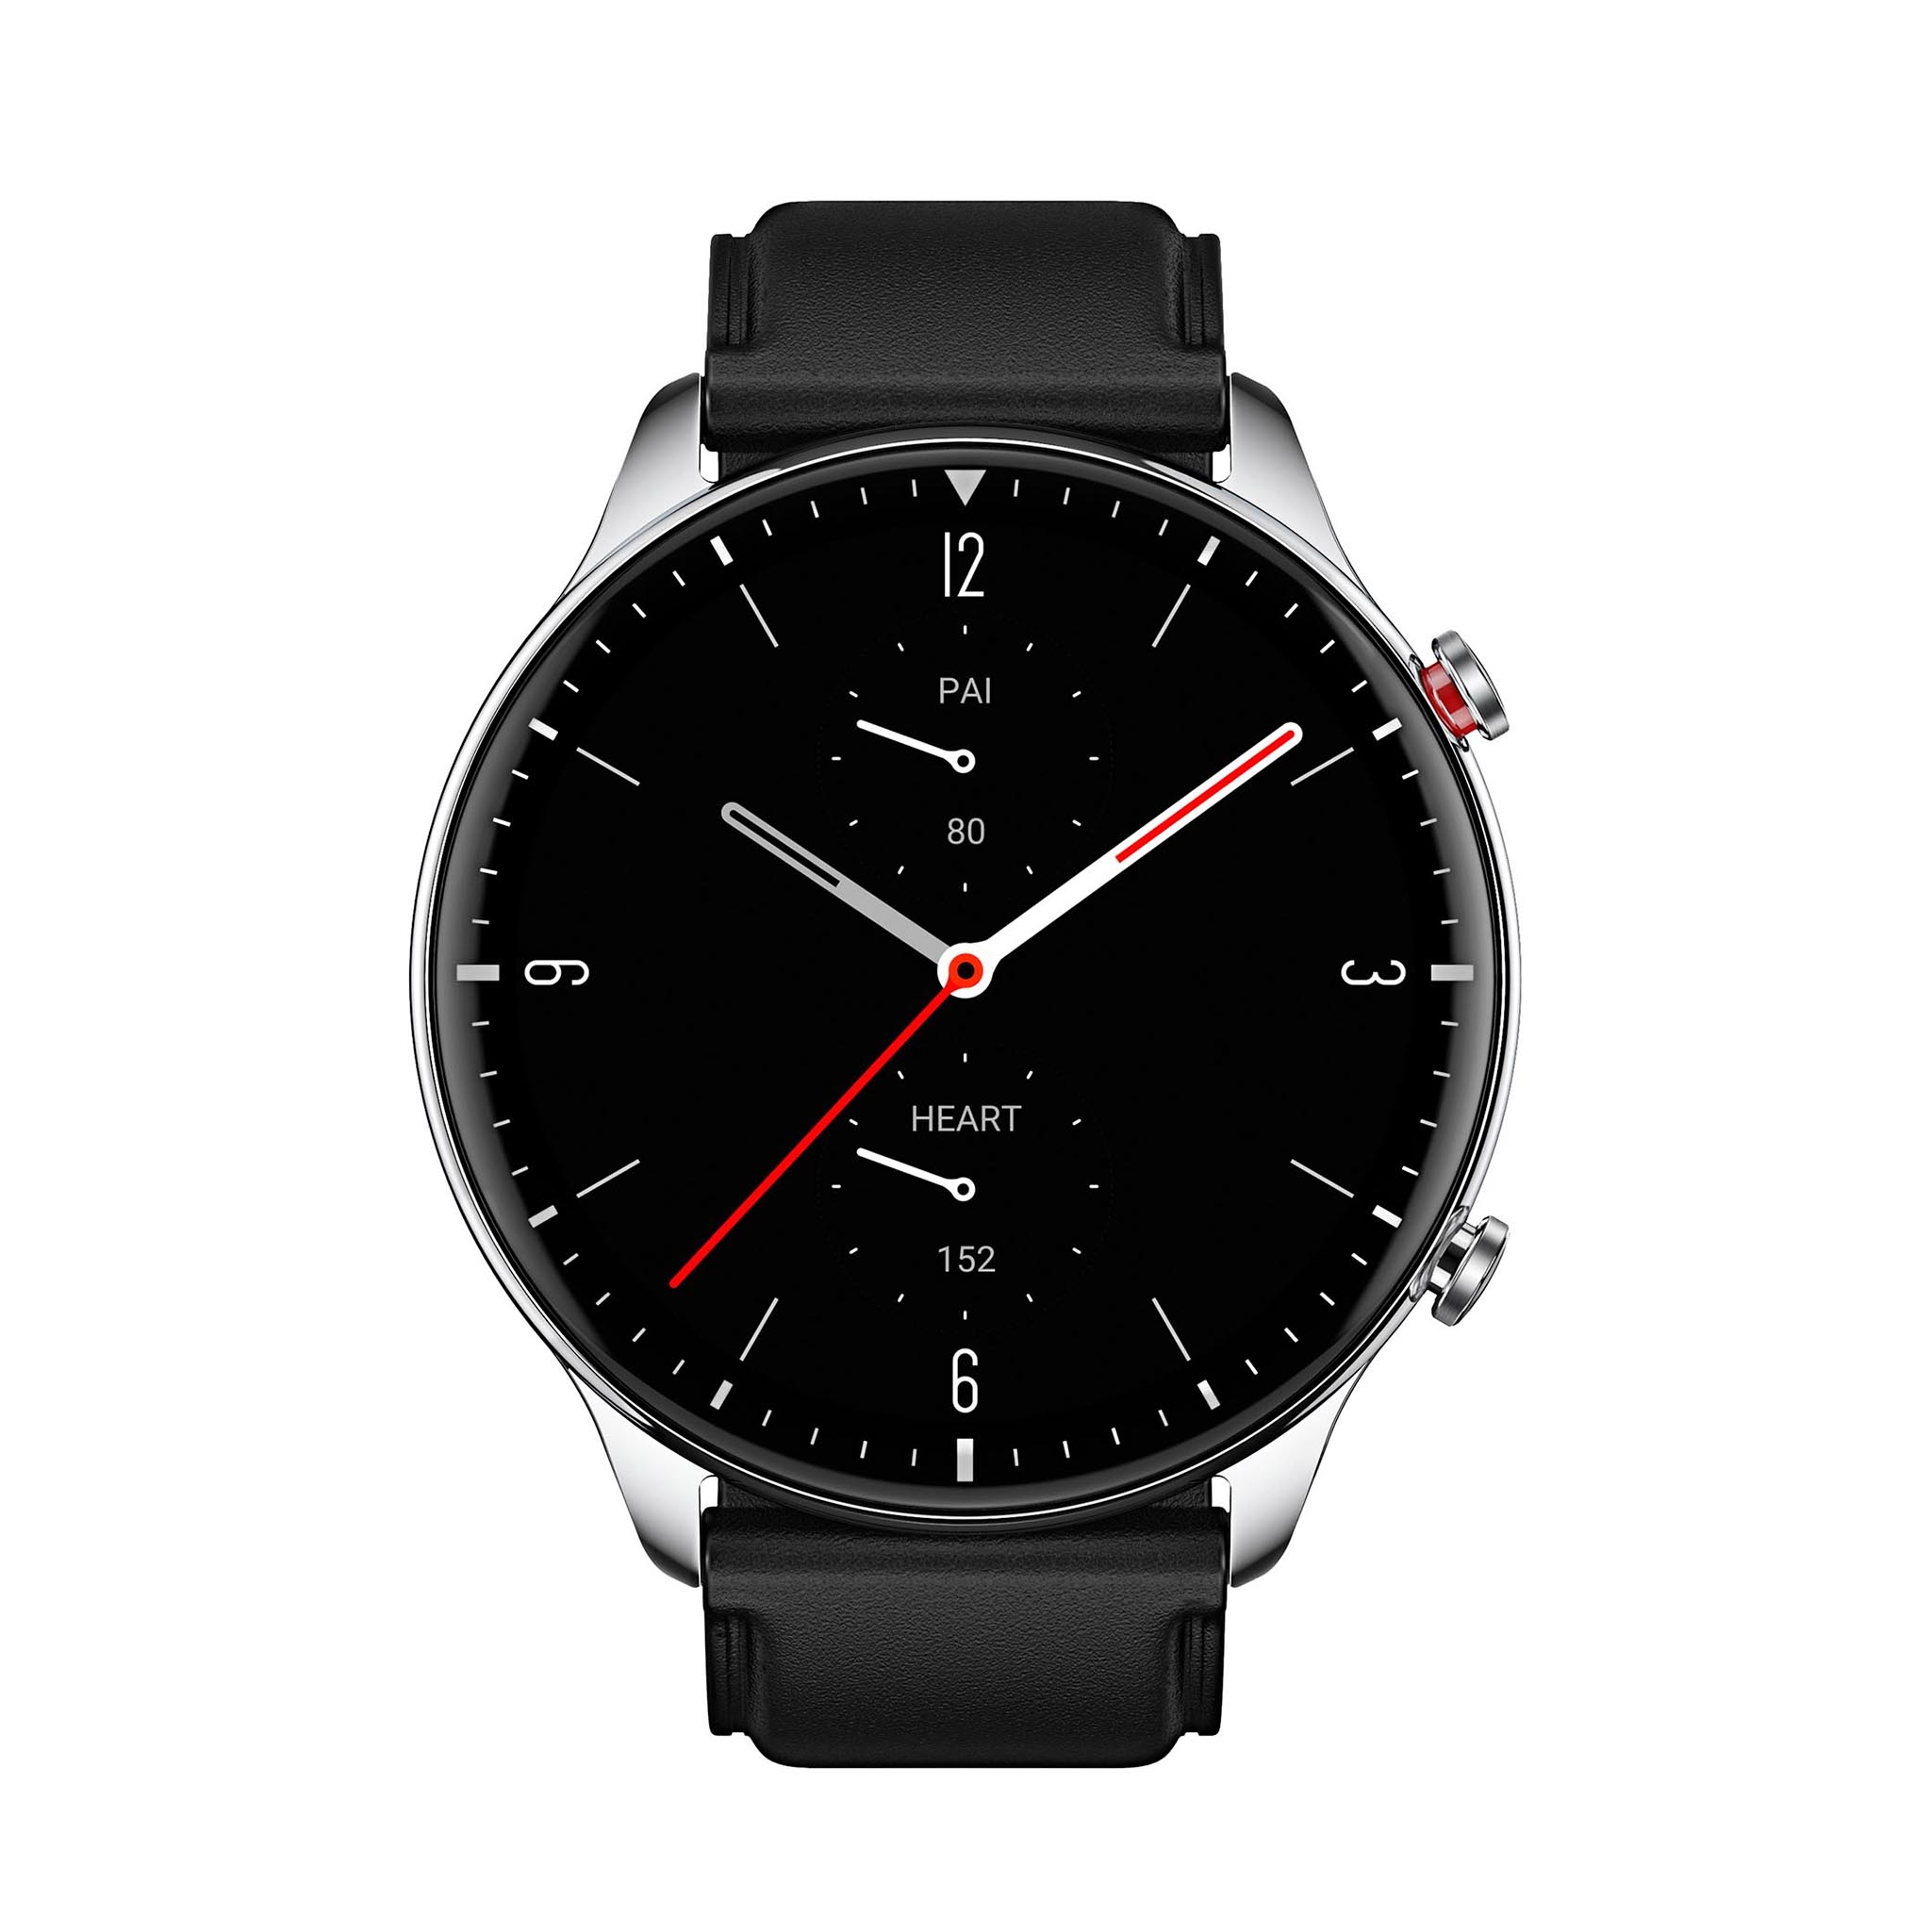 Image of Smartwatch AMAZFIT - GTR 2 A1952 Obsidian Black/Classic Edition